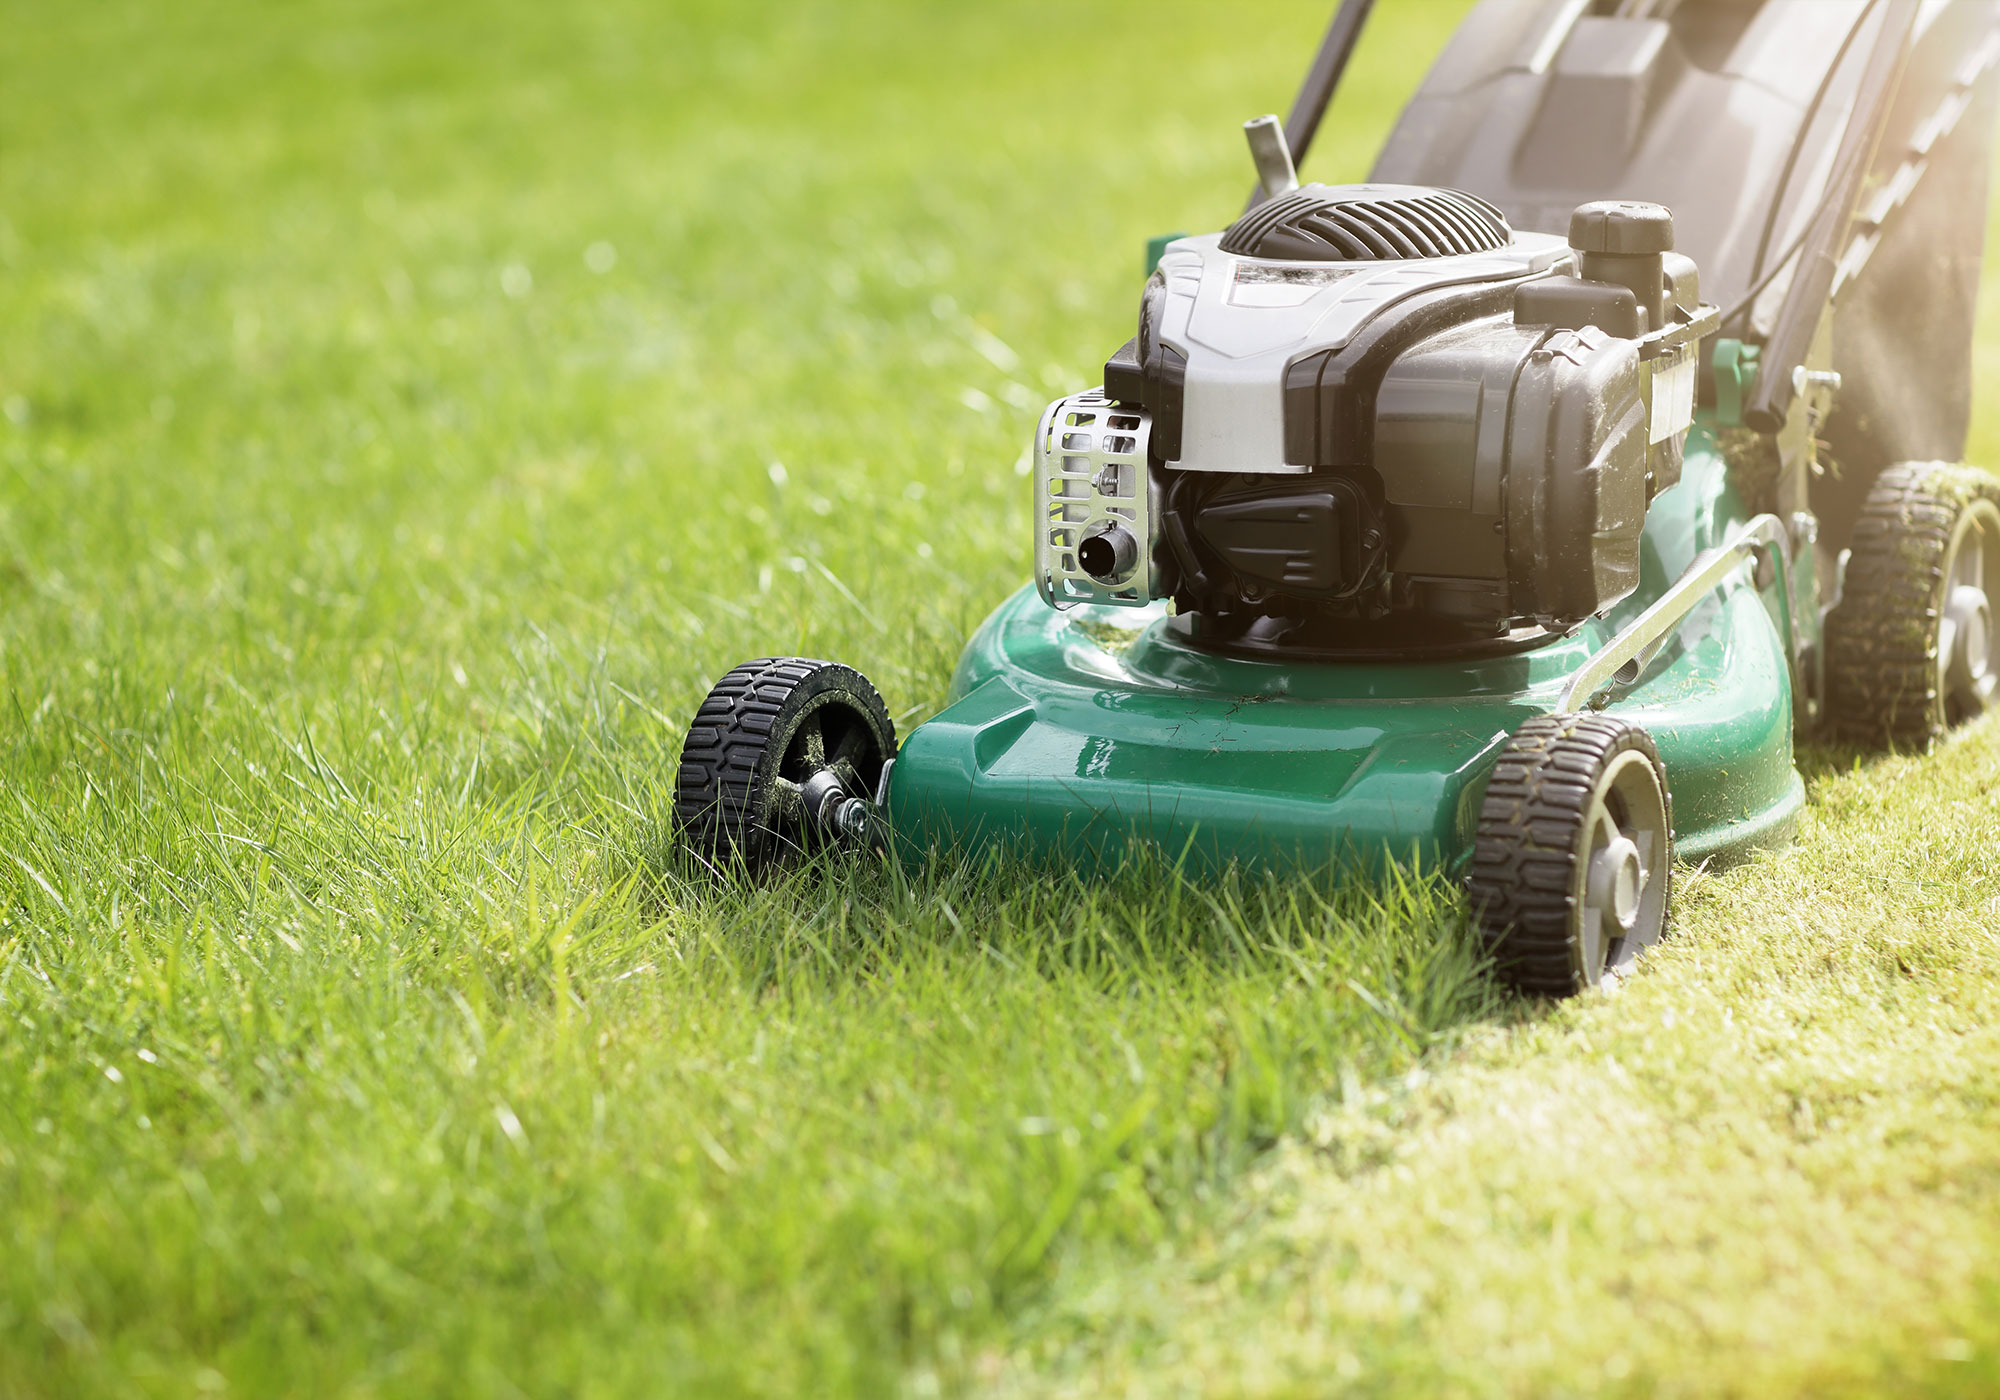 Instant Turf Melbourne - Instant Turf Diggers Rest - Buy Turf Online Diggers Rest